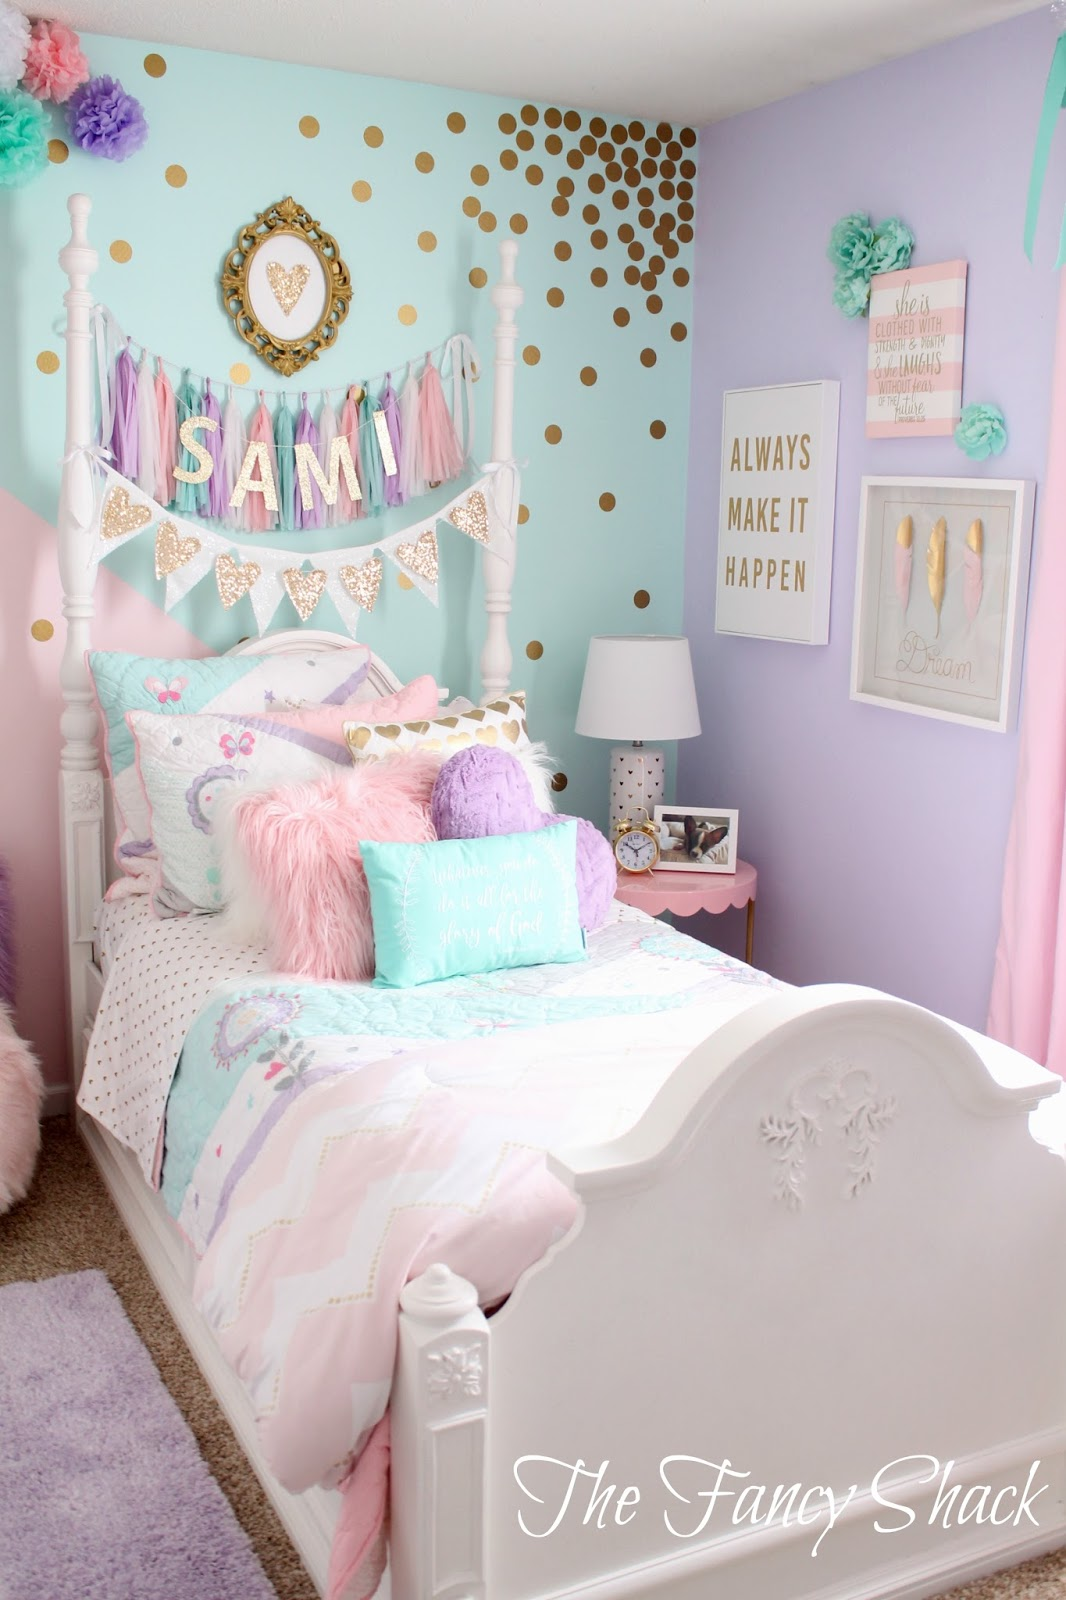 Bedroom Girl Accessories The Fancy Shack Pastel Girls Room Makeover